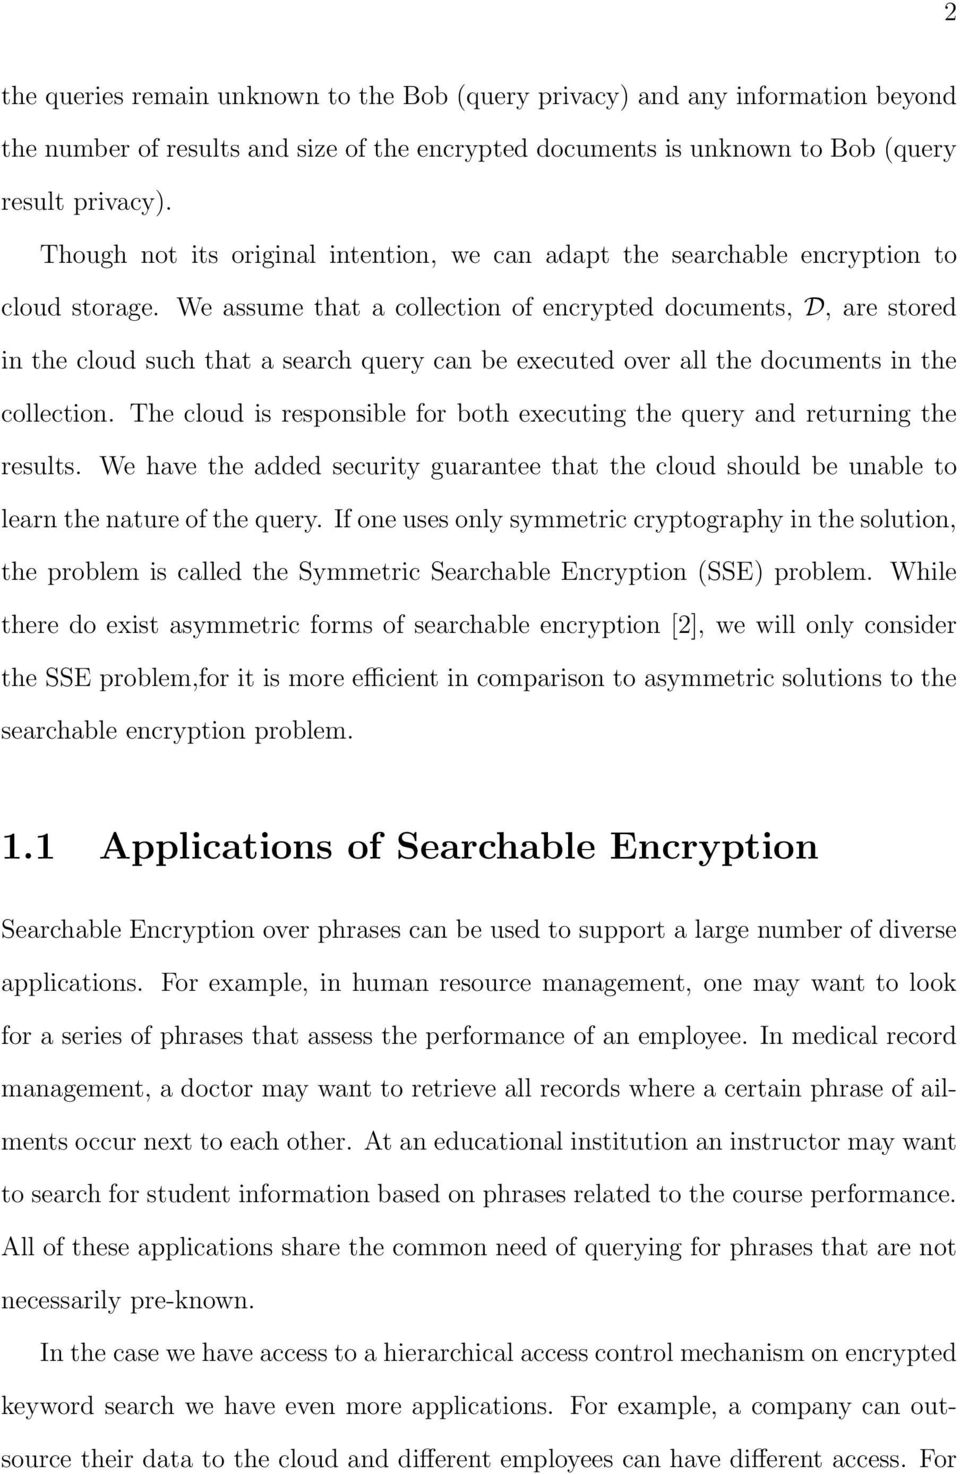 We assume that a collection of encrypted documents, D, are stored in the cloud such that a search query can be executed over all the documents in the collection.